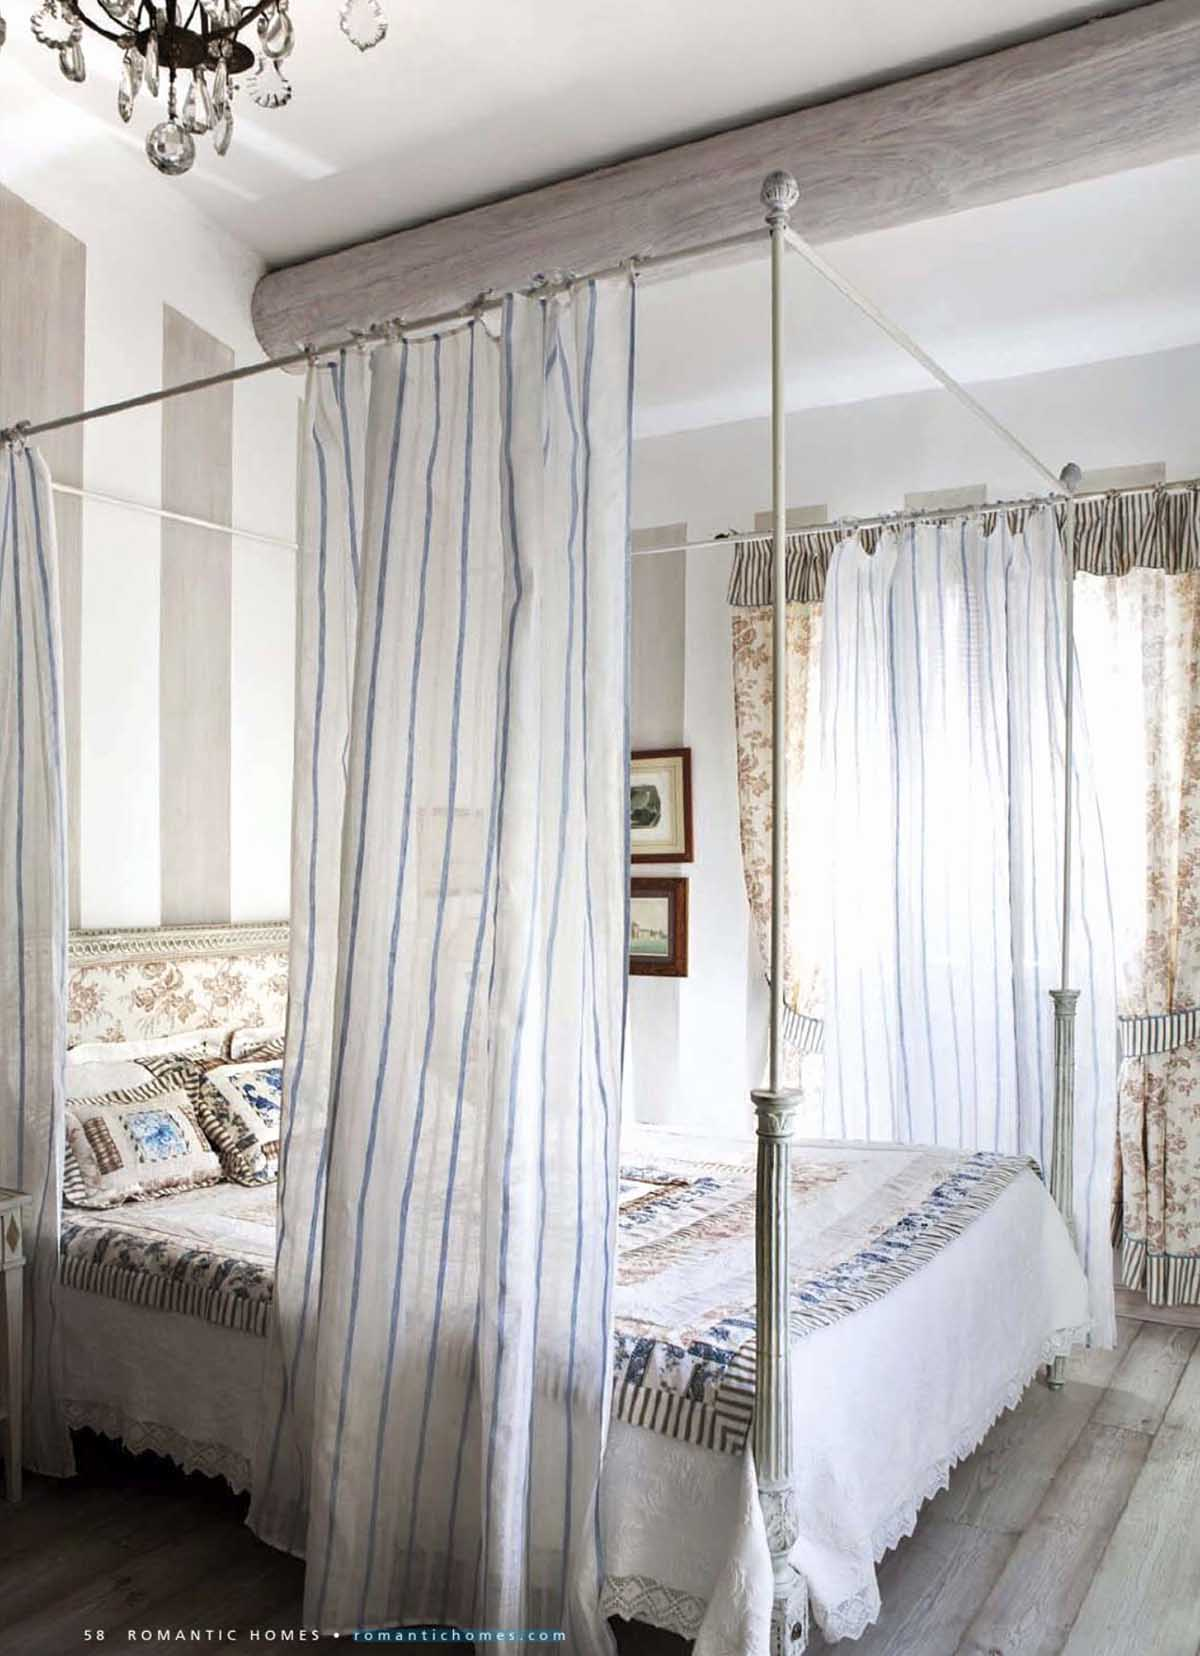 Curtained Four Poster Bed with Mixed Patterns